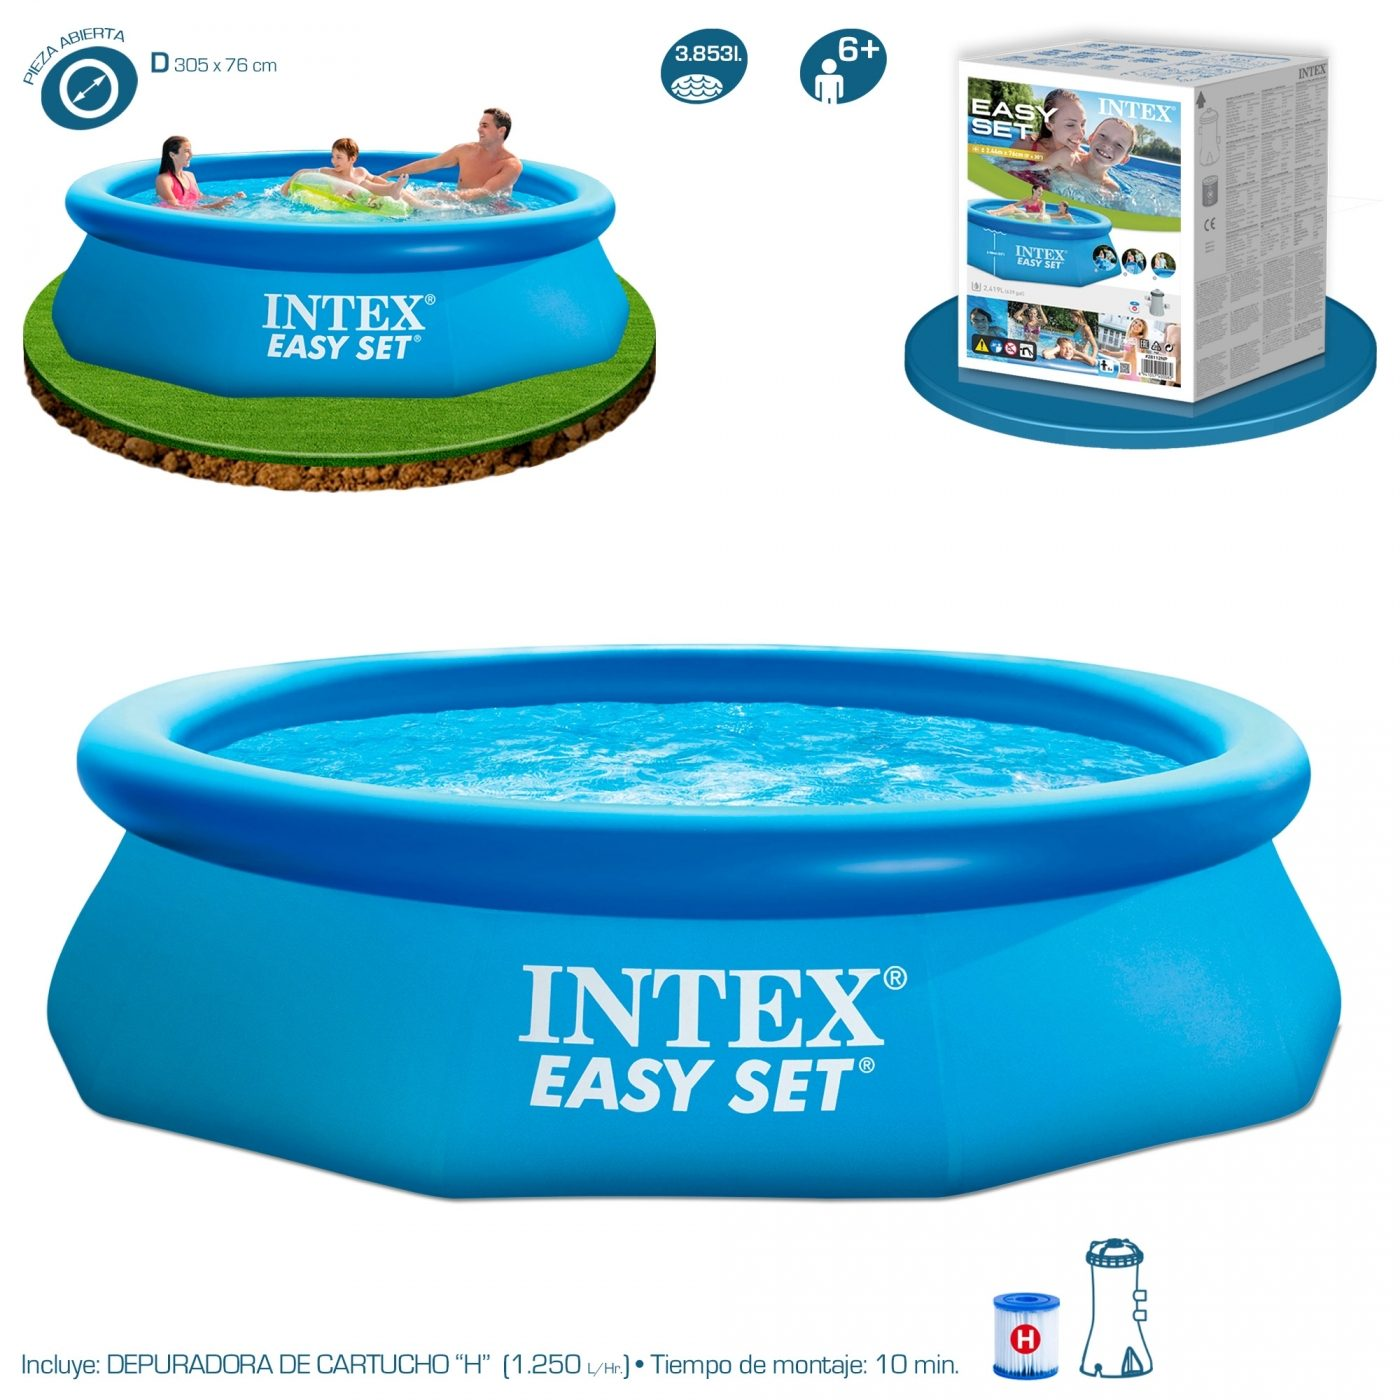 Piscina Intex 6000 Litros Medidas Piscina Hexagonal Easy Set 305 X 76 Cm Con Depuradora